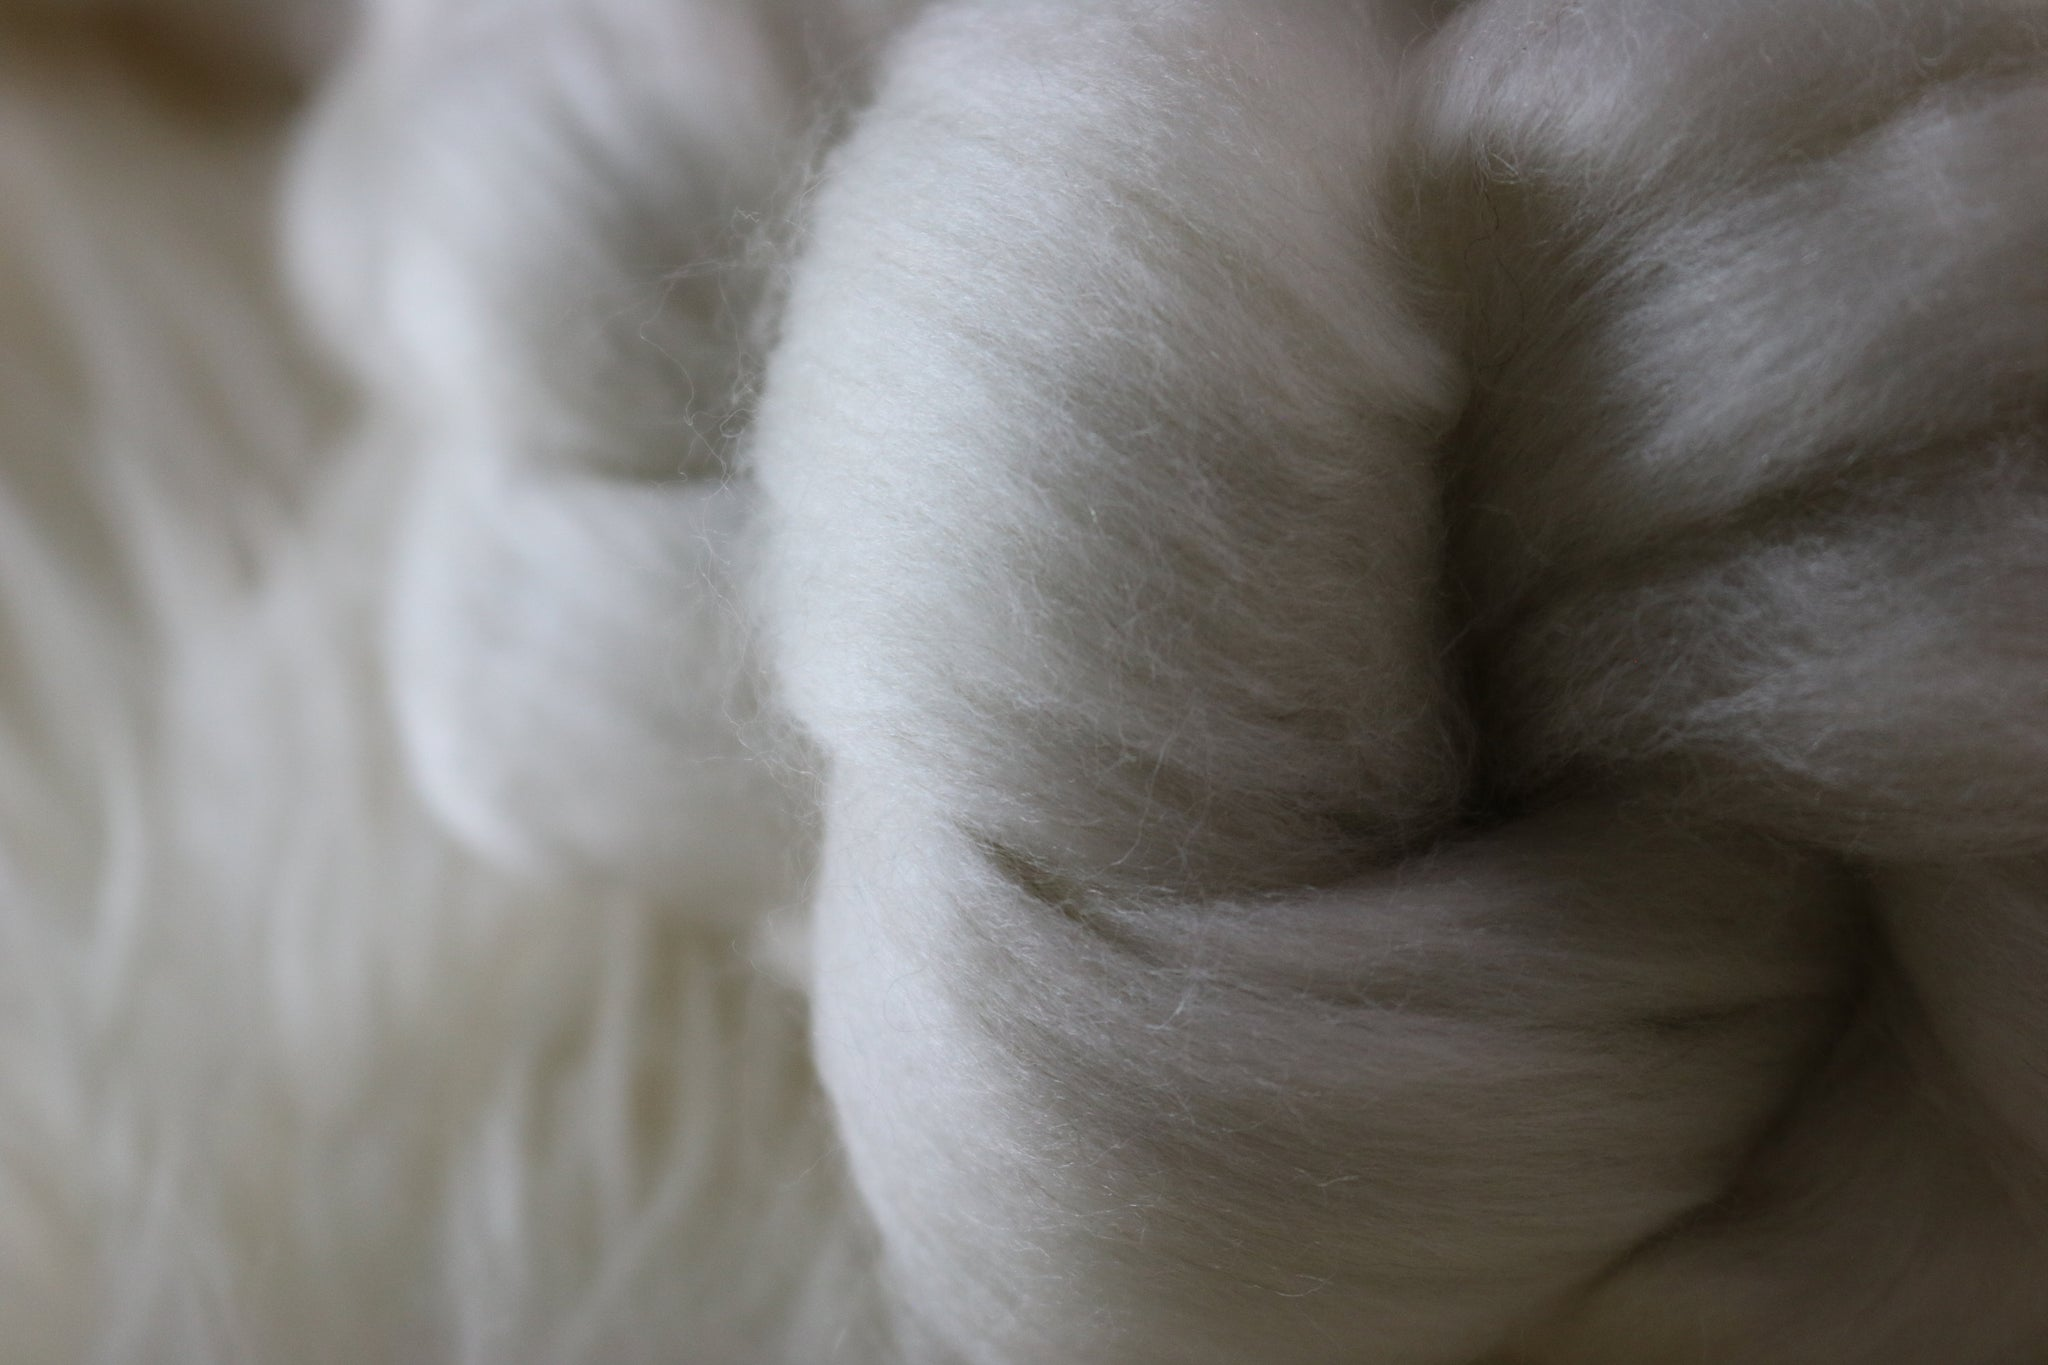 Naked Merino Cashmere Top Braid - natural white merino wool roving